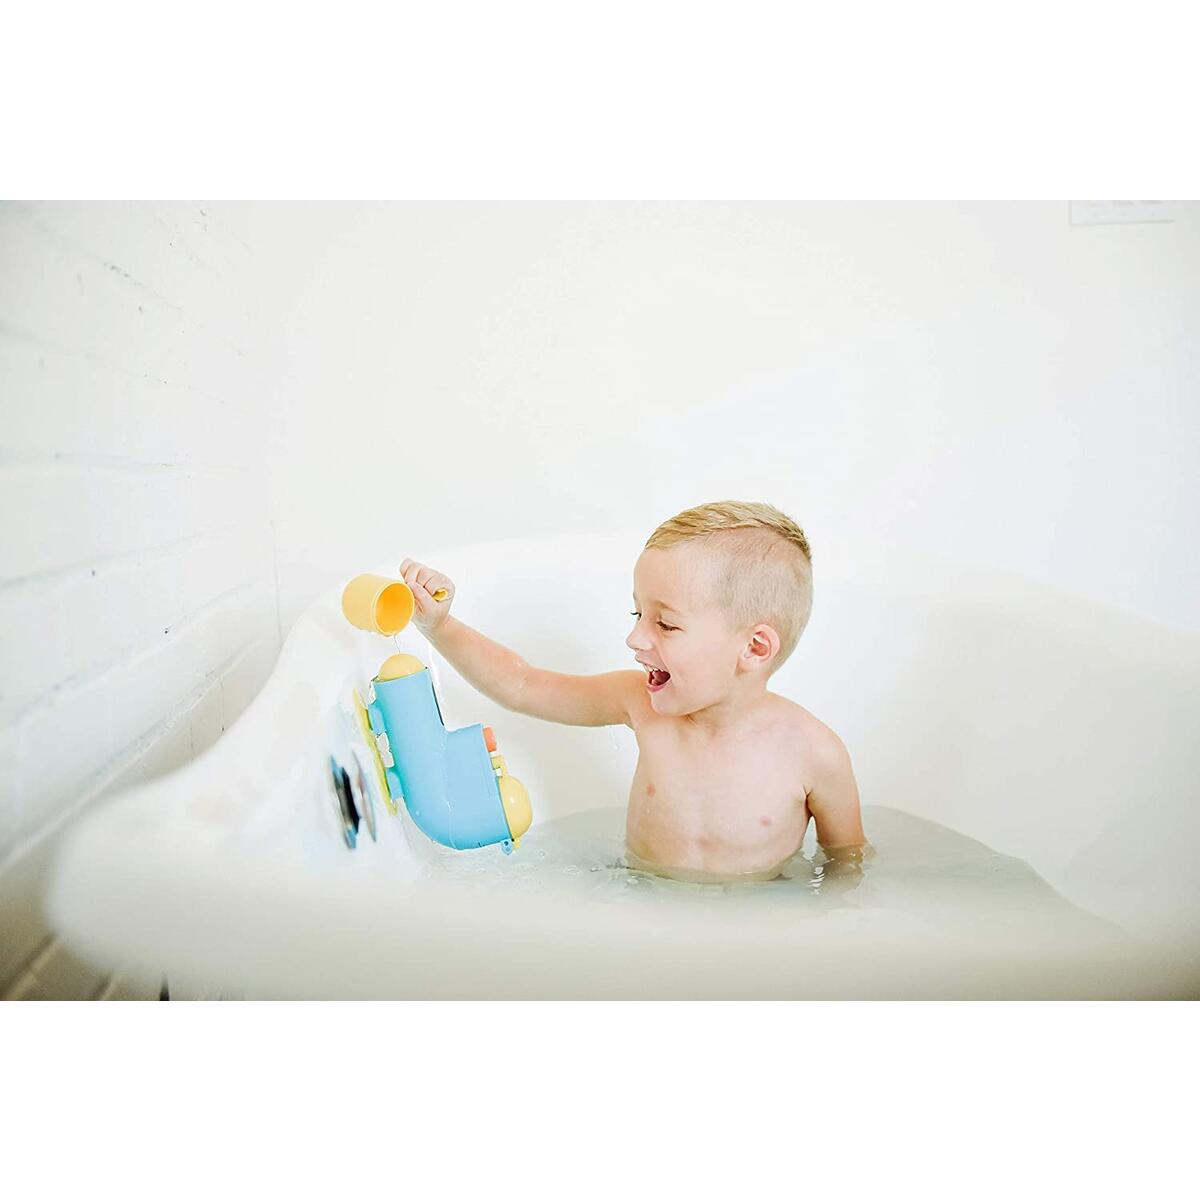 Inspiration Play Fill N' Splash Submarine Bath Toy for Baby, Toddlers, Ages 1-4